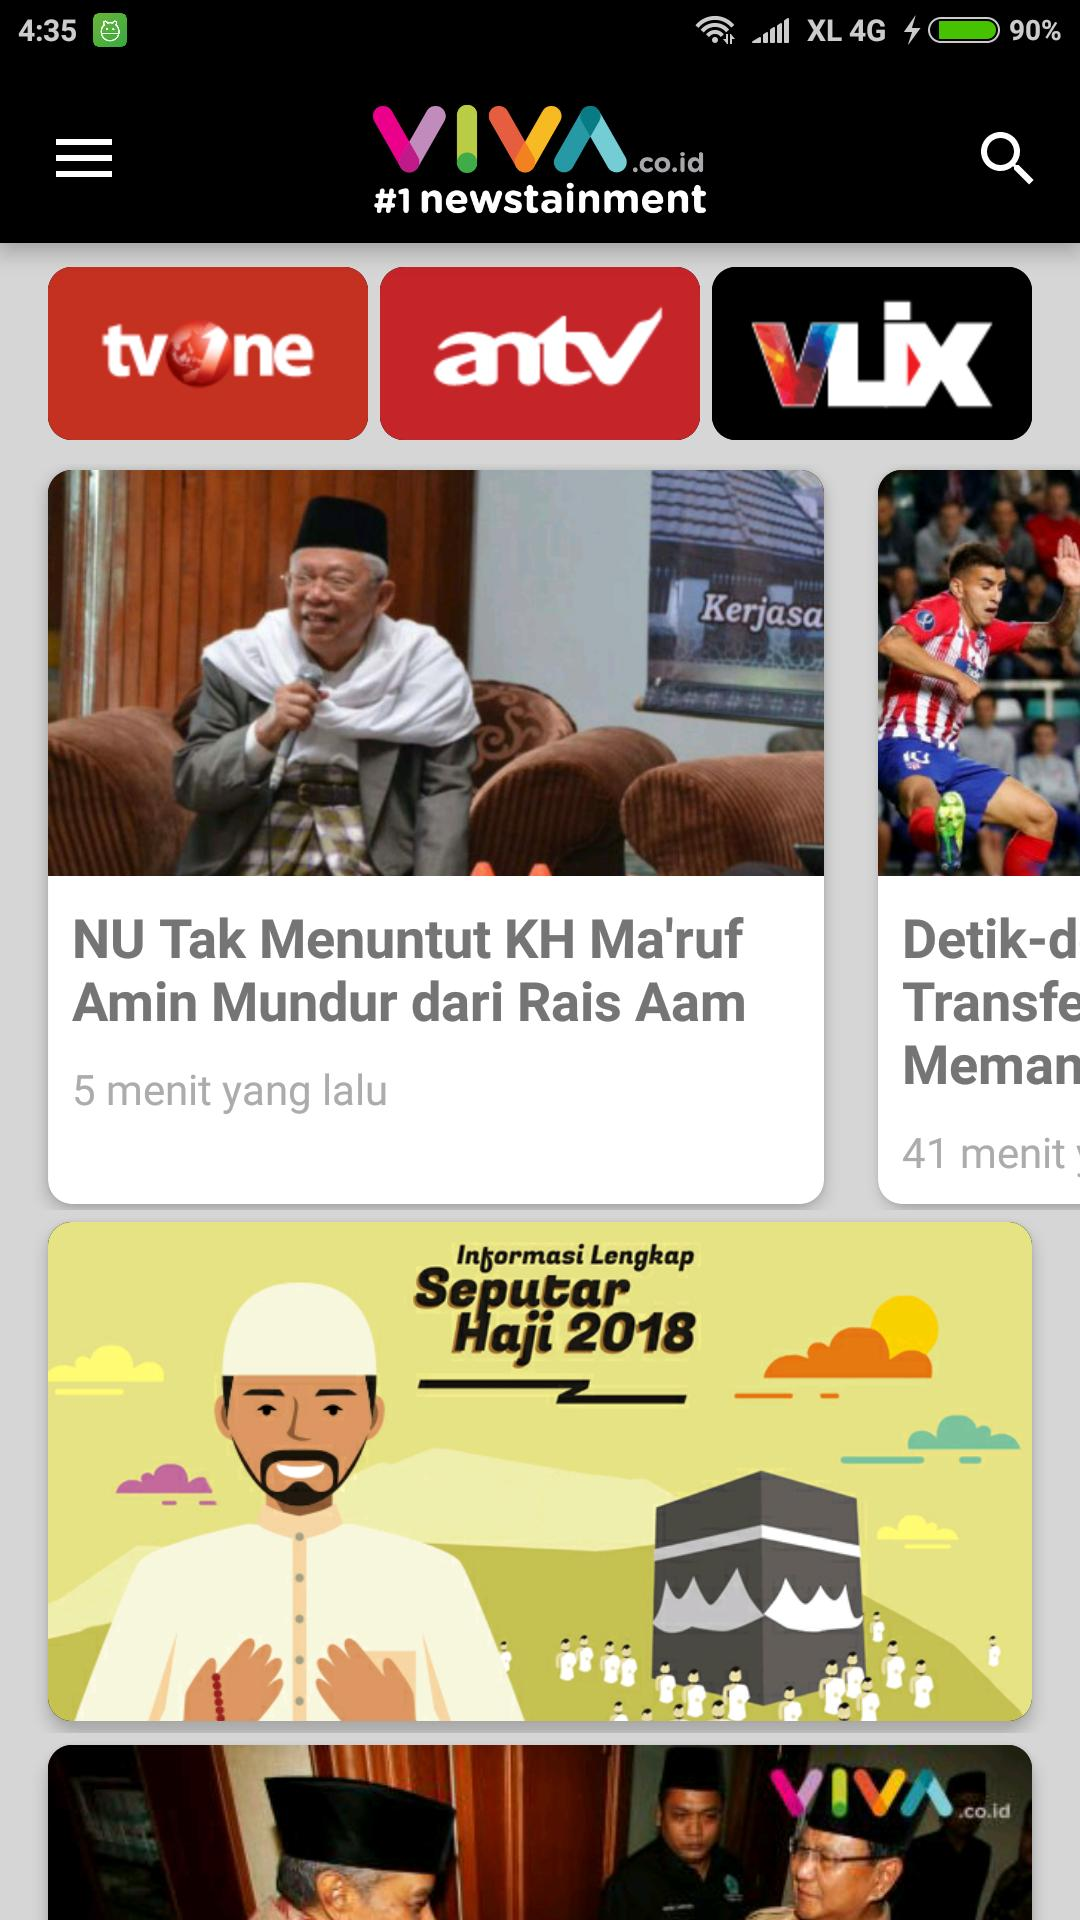 Viva Live Streaming Tvone Antv 1newstainment For Android Apk Download